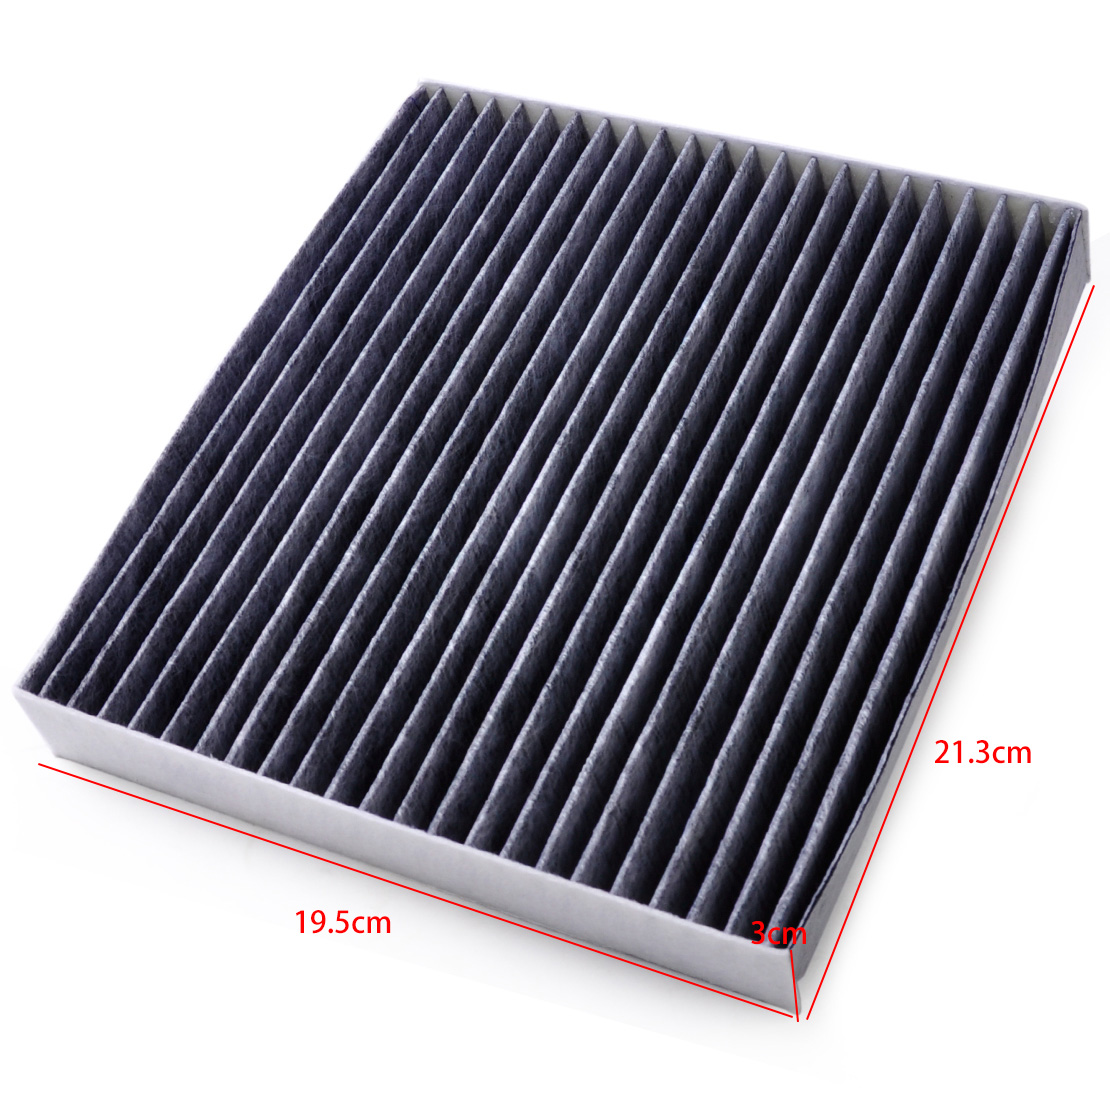 cabin air filter fits toyota camry rav4 4runner prius yaris scion 87139 50060 ebay. Black Bedroom Furniture Sets. Home Design Ideas